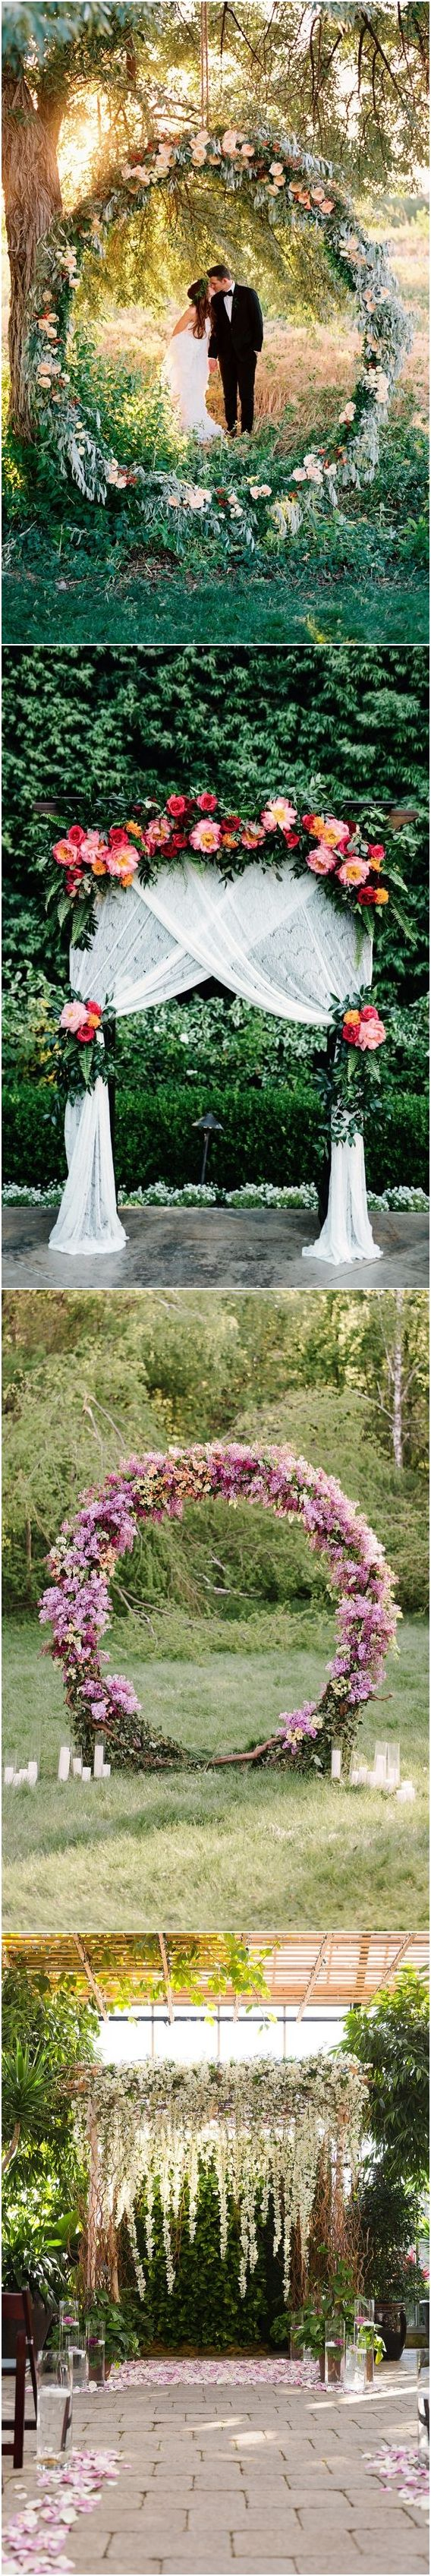 579 best wedding arches images on pinterest beach wedding arches top 20 floral wedding arch canopy ideas junglespirit Images